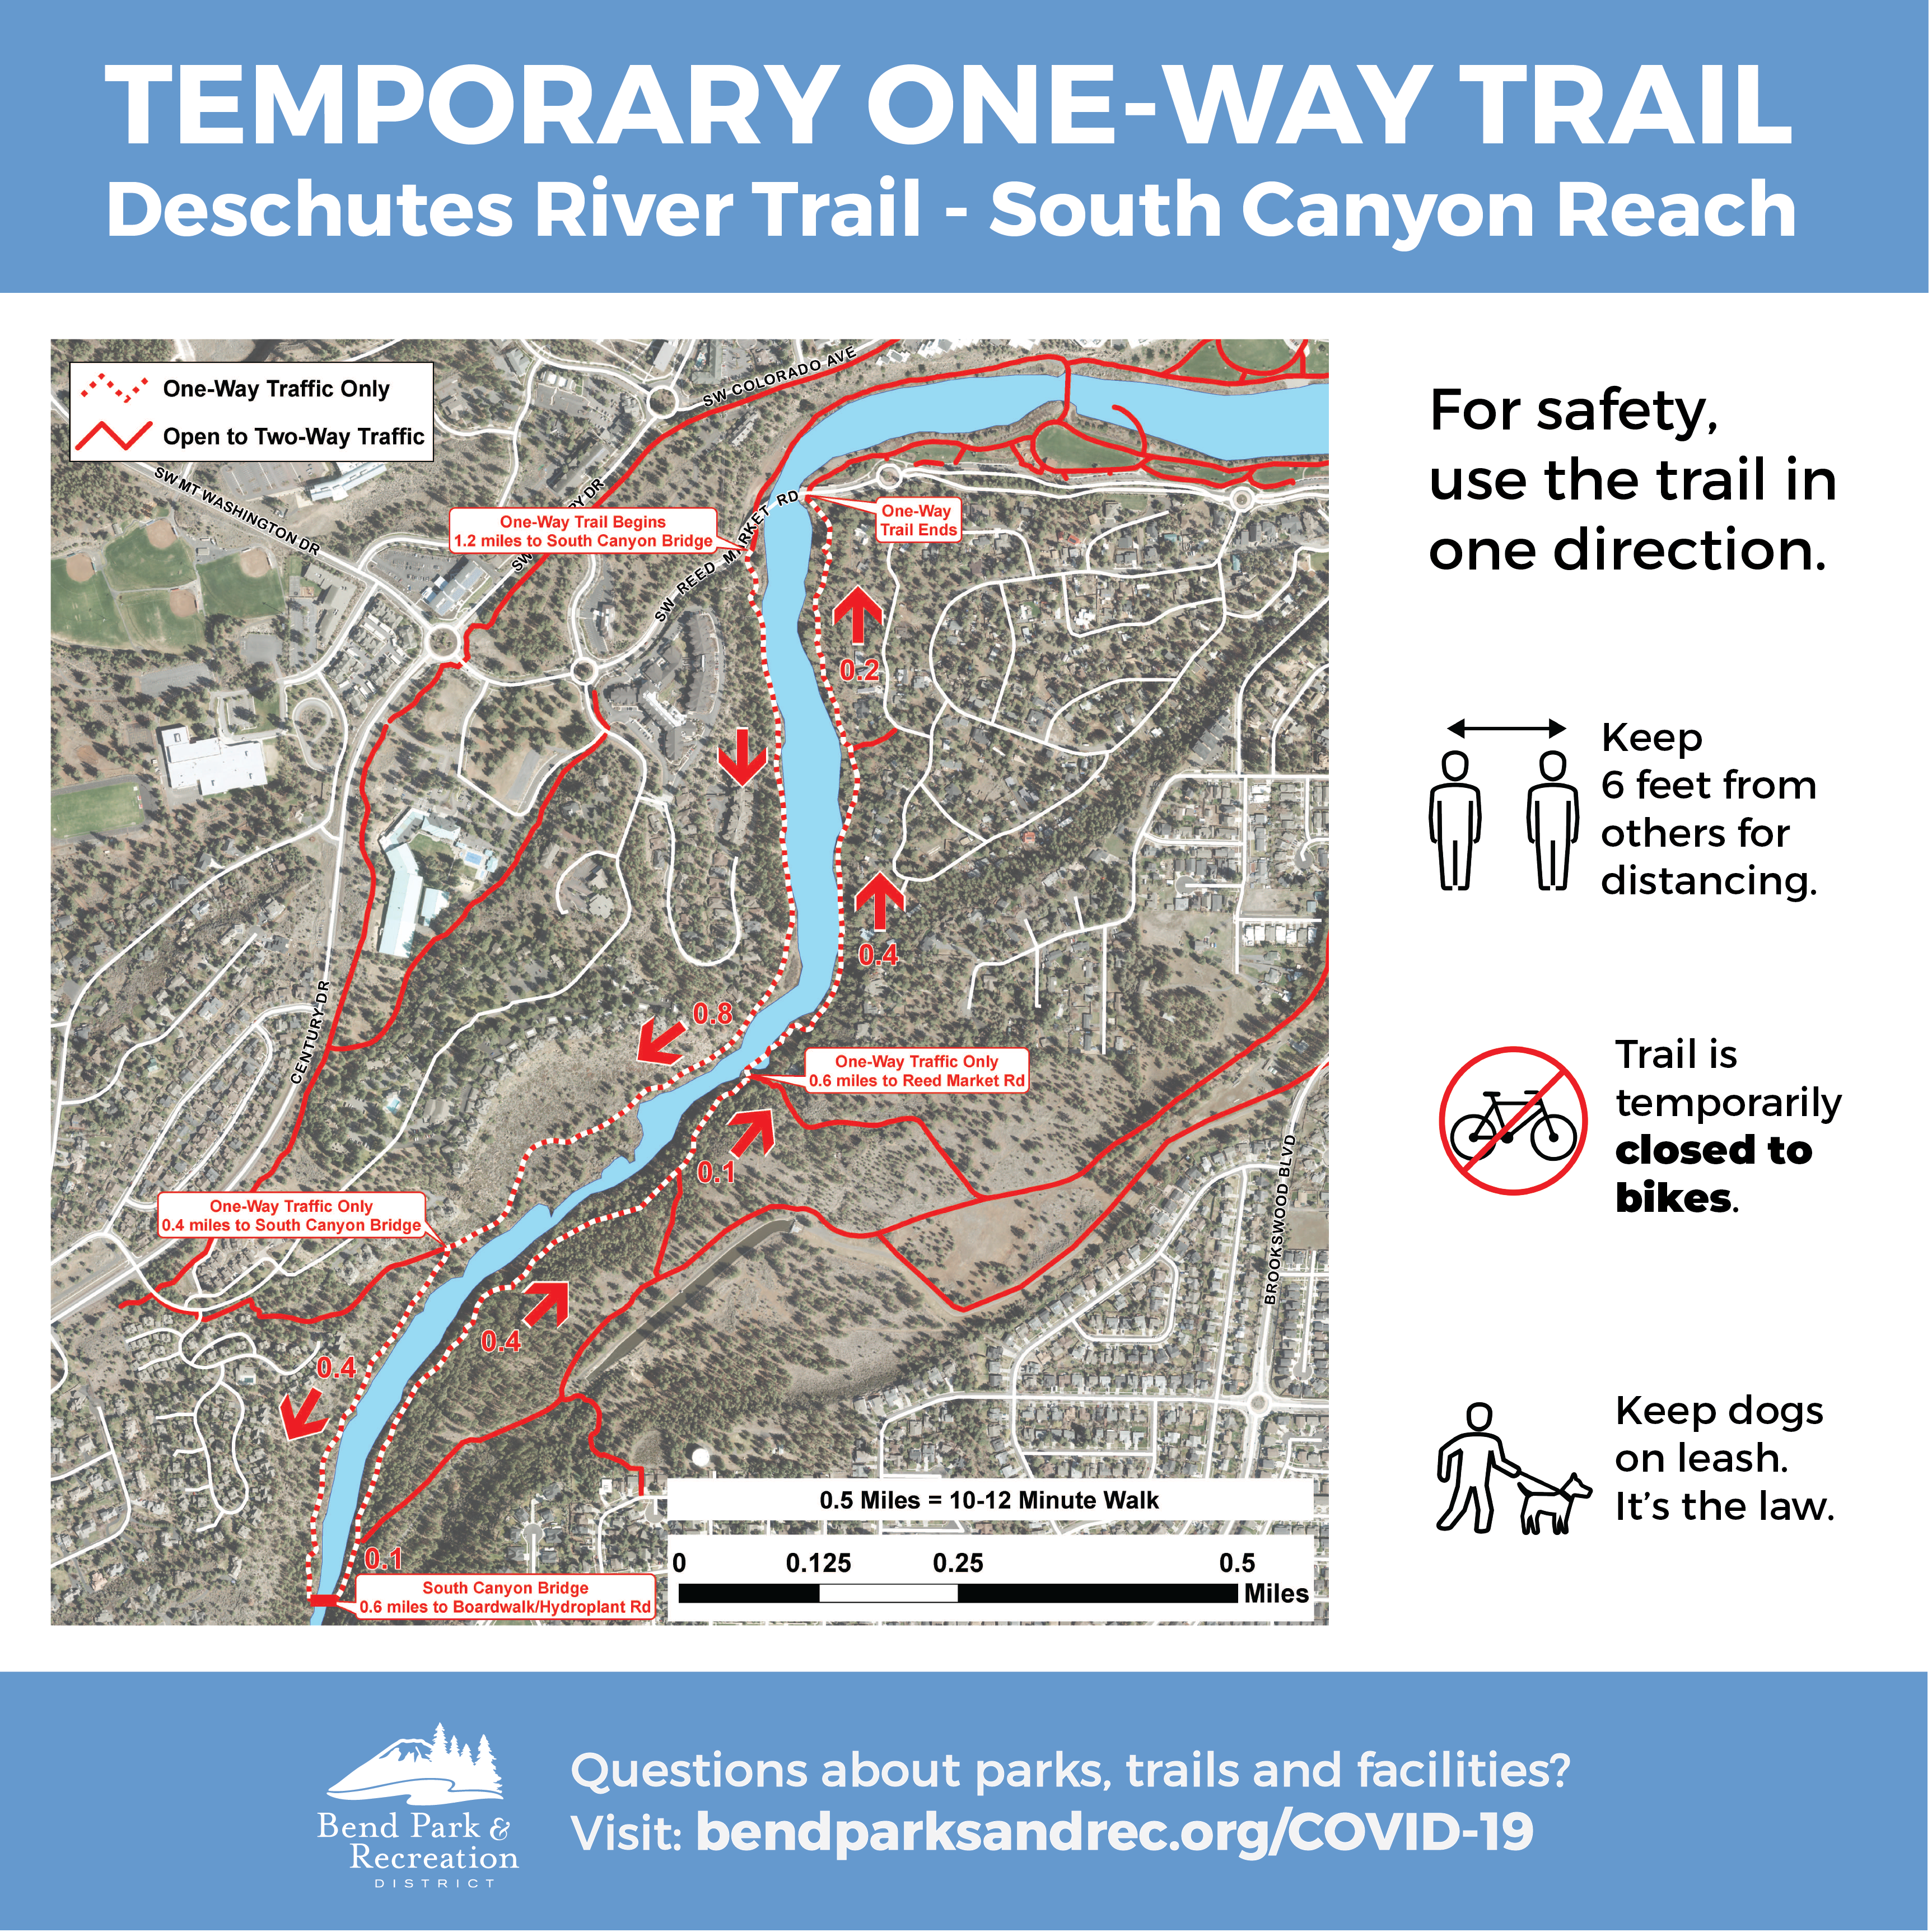 Map indicating one-way trail instructions for the South Canyon stretch of the Deschutes River Trail.